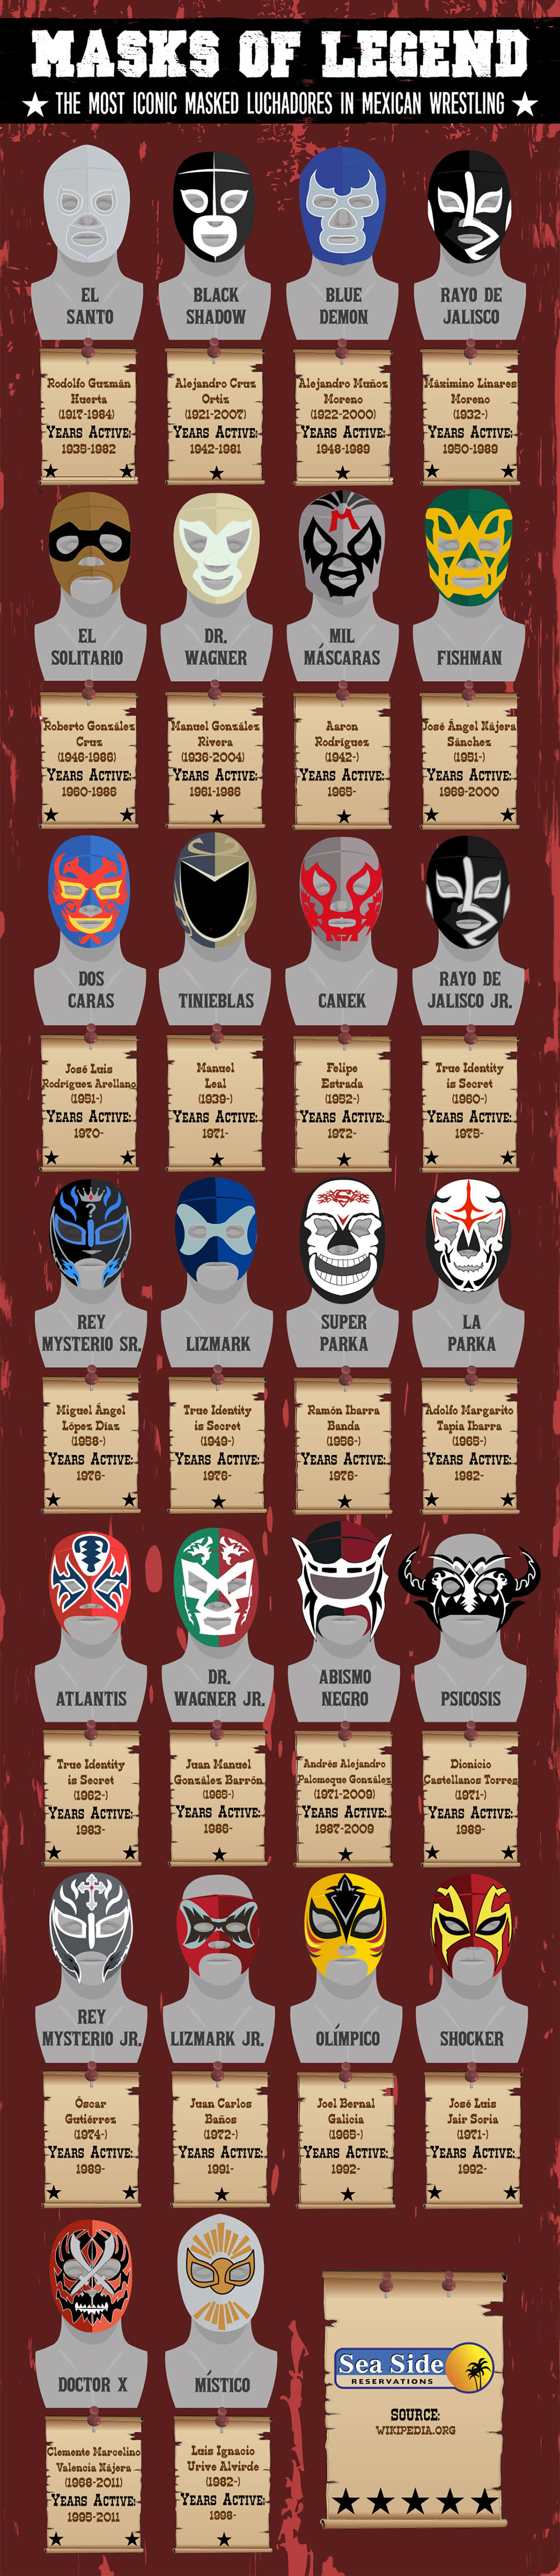 Most Famous Masked Luchadores in Mexican Wrestling Infographic